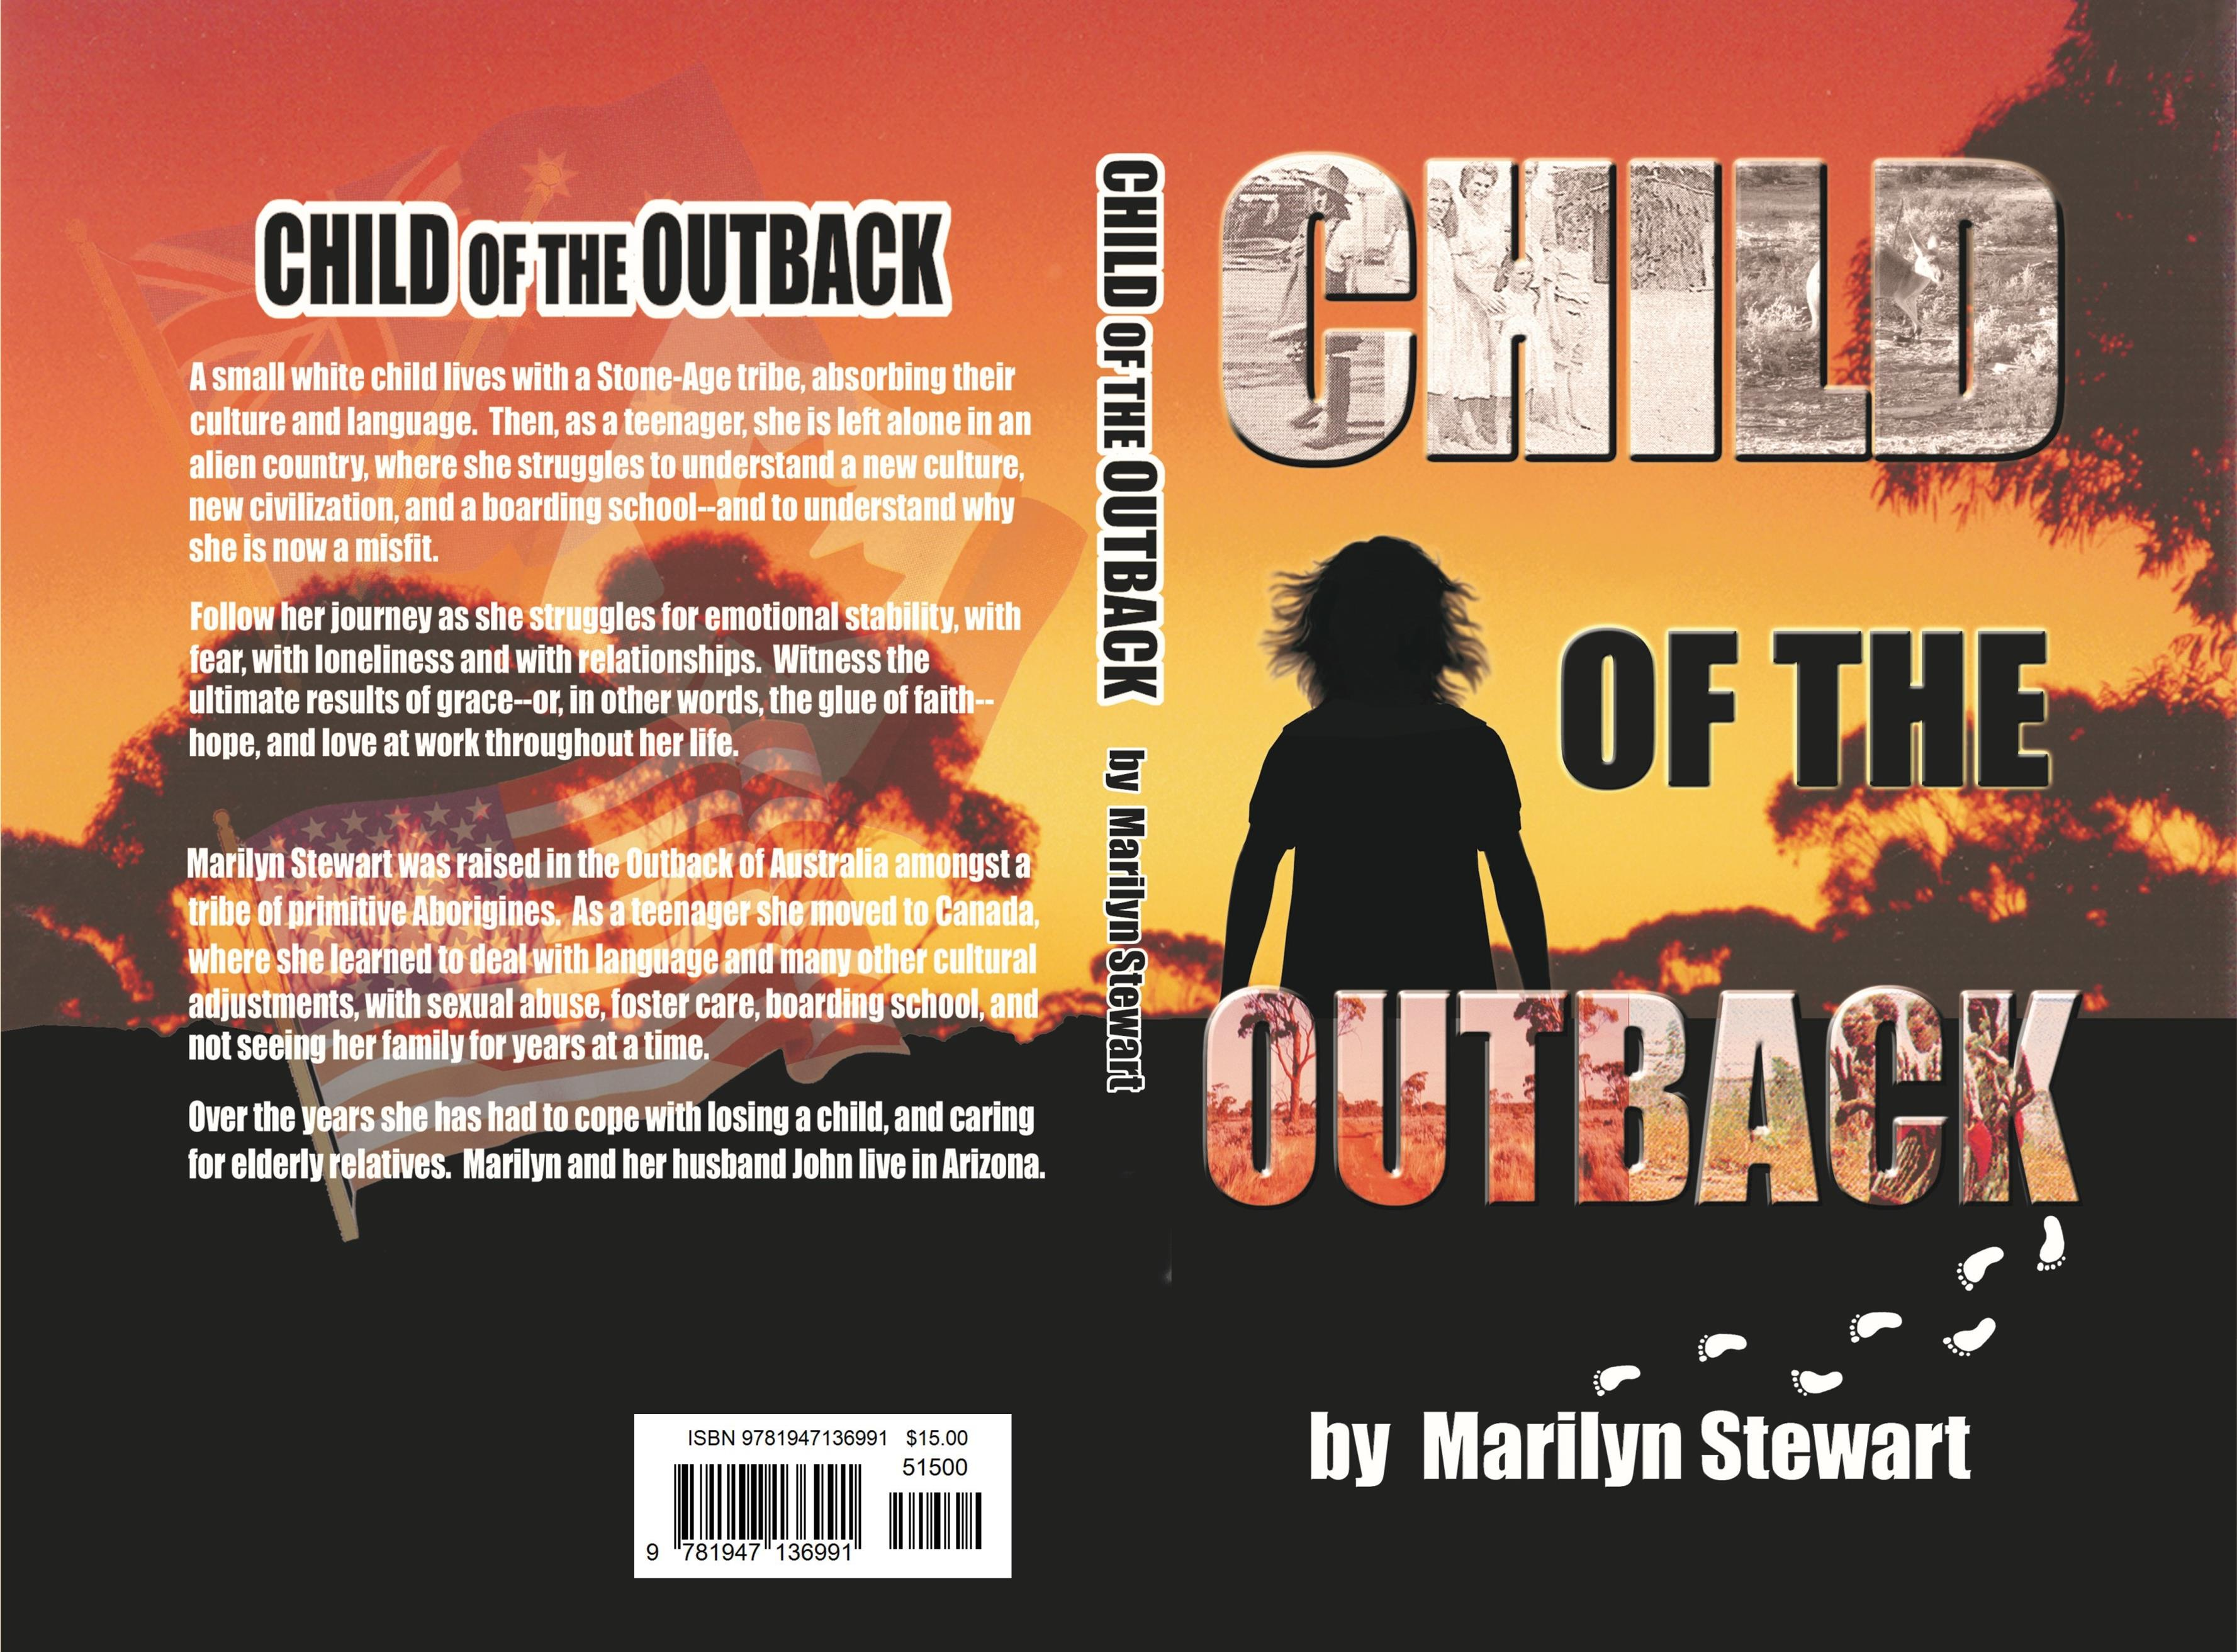 Child of the Outback cover image